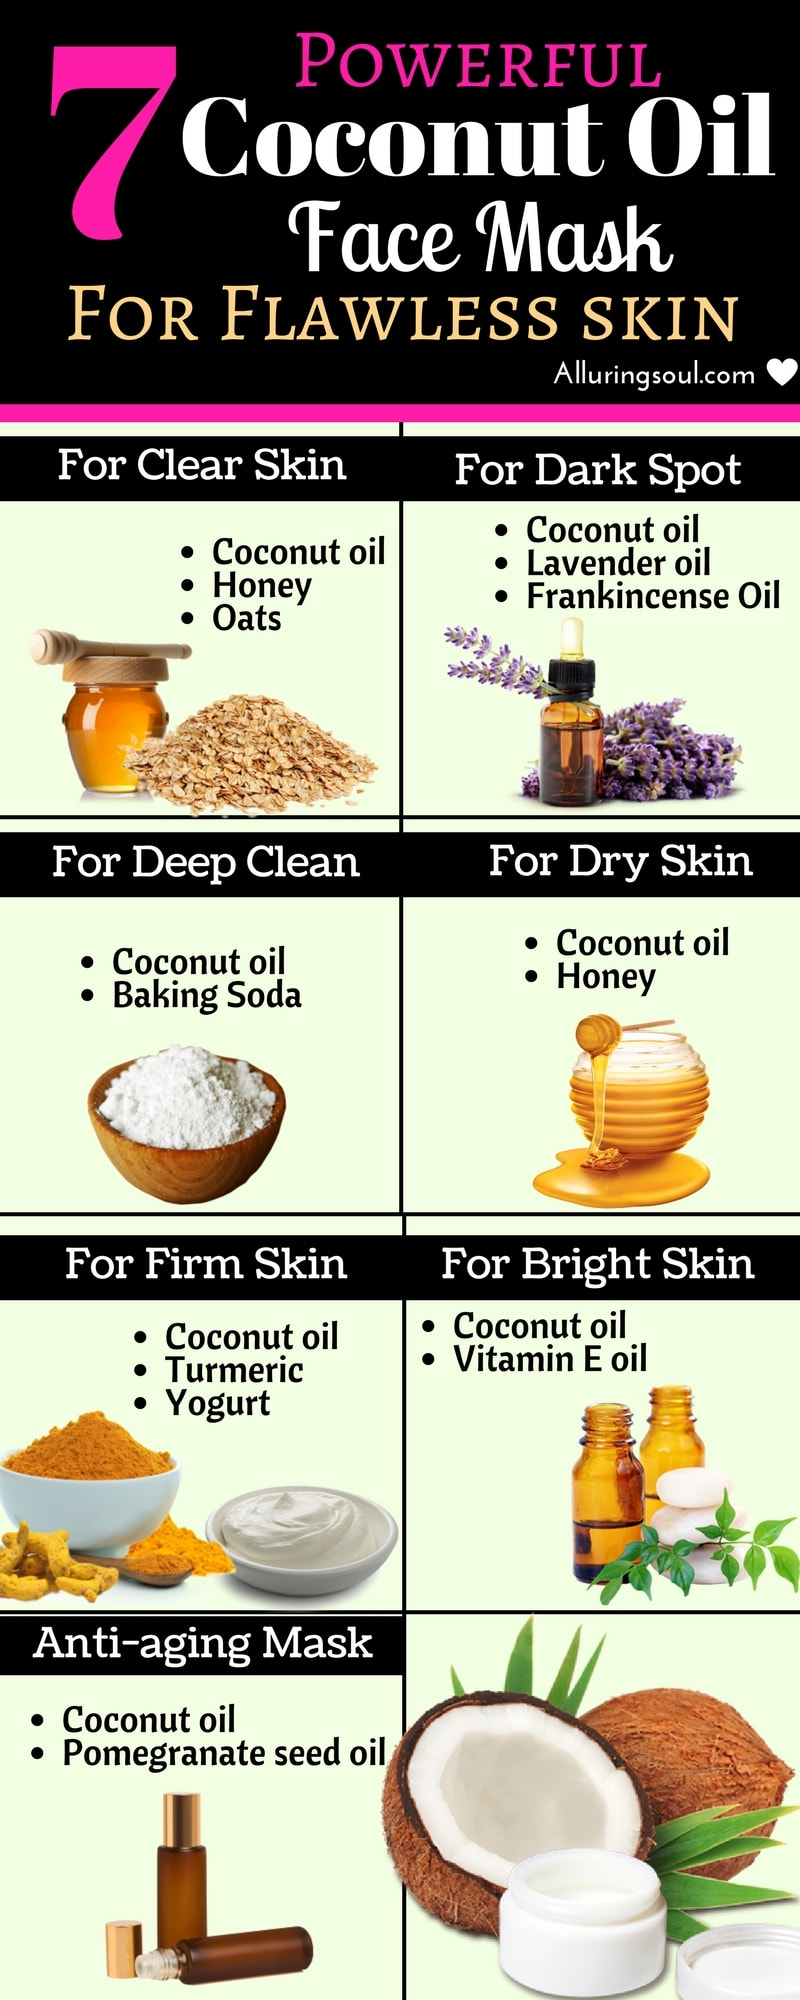 7 Powerful Coconut Oil Face Mask For